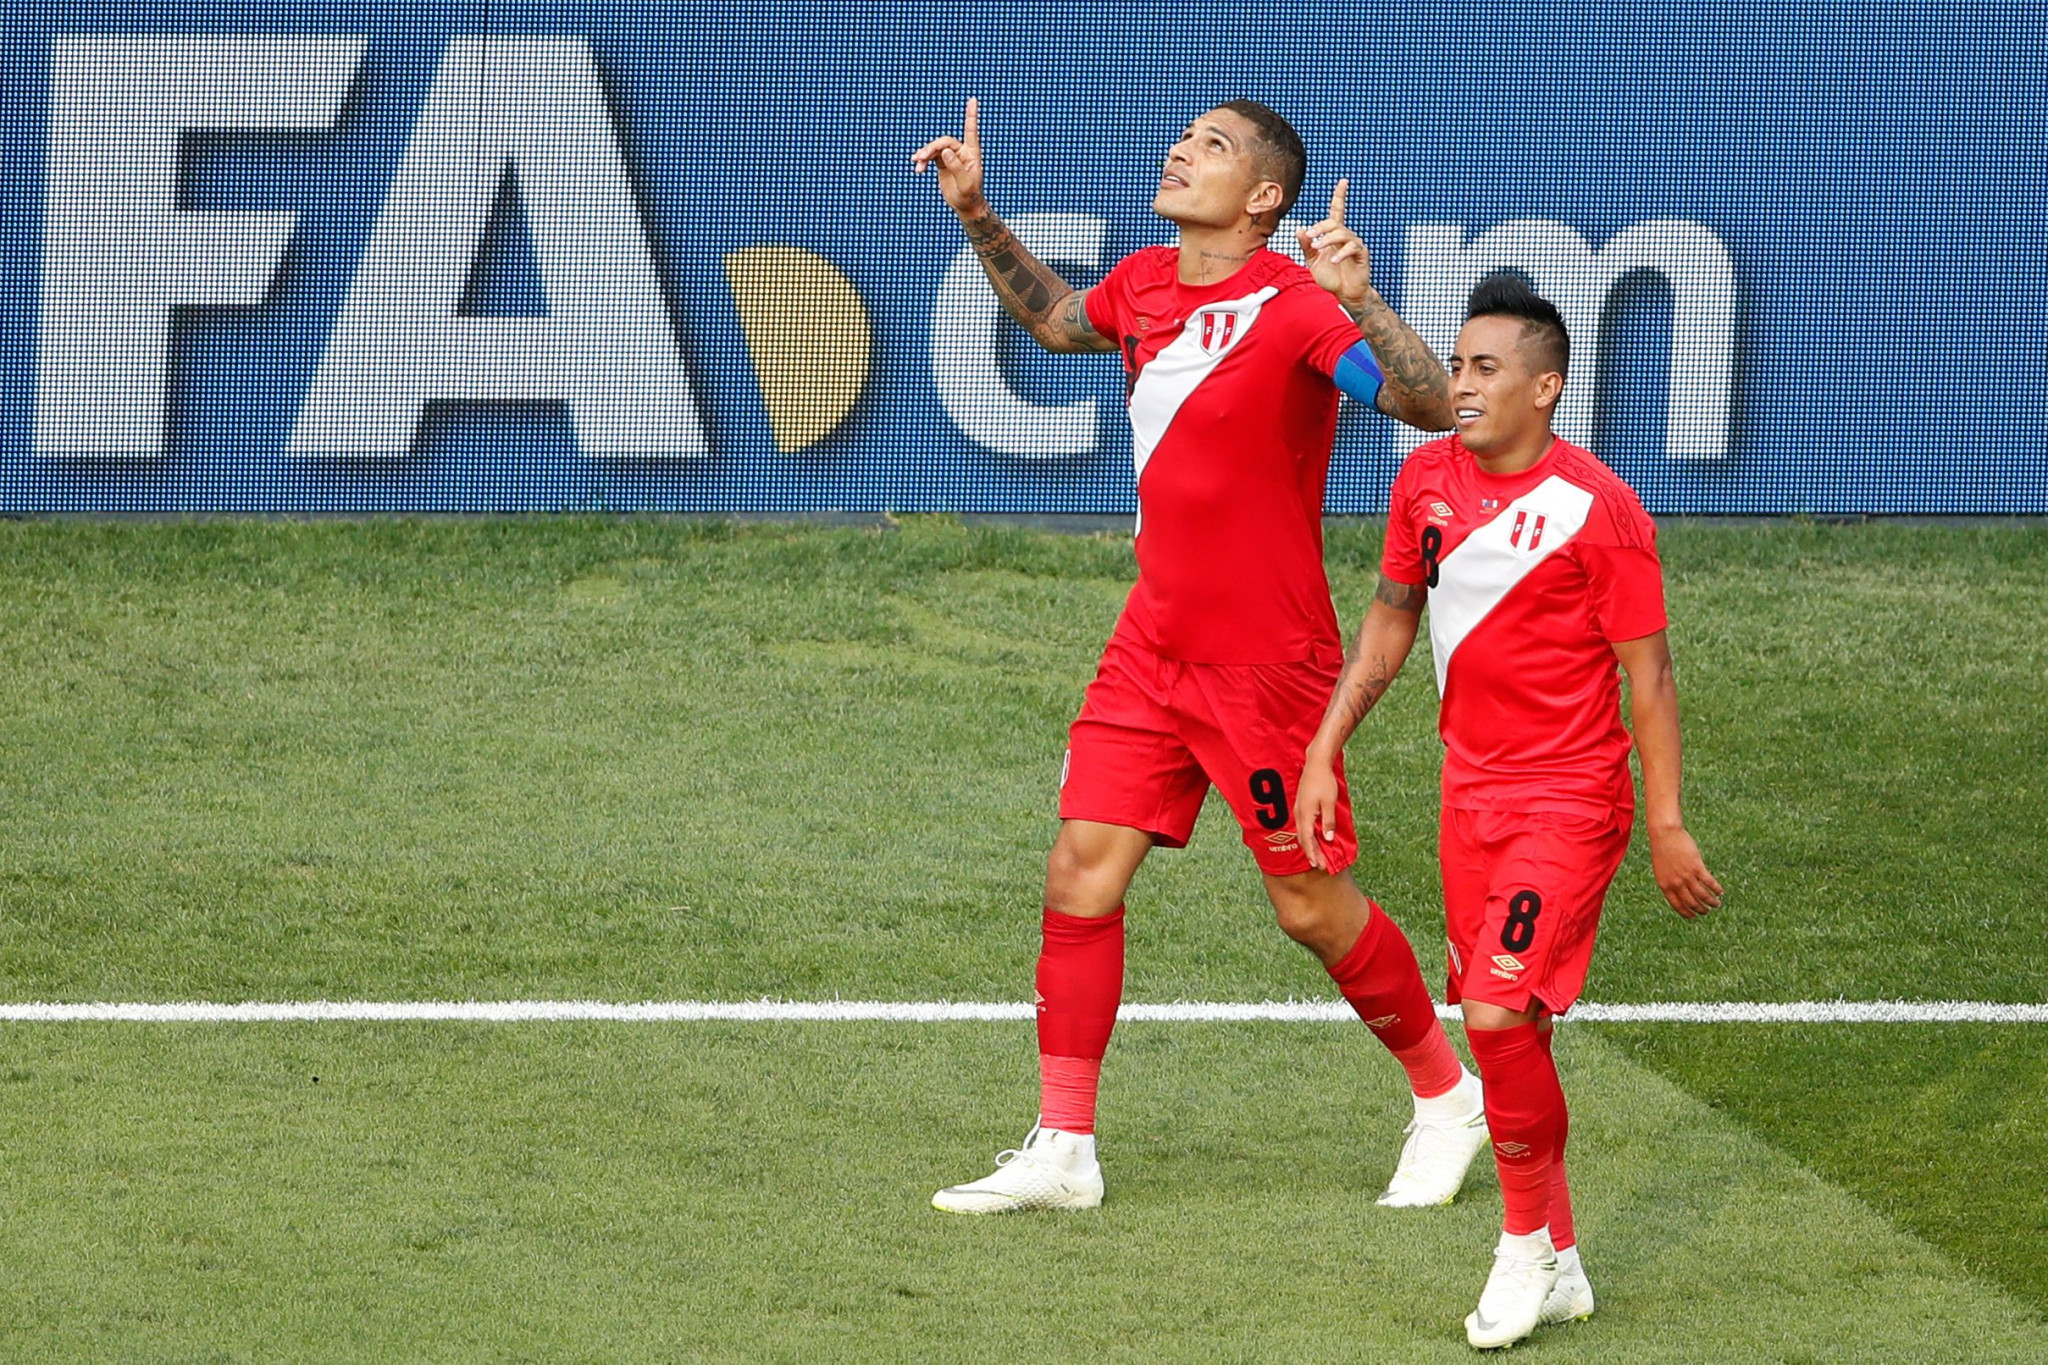 Paolo Guerrero scored for Peru against Australia at the FIFA World Cup, but his side exited after the group phase ©Getty Images